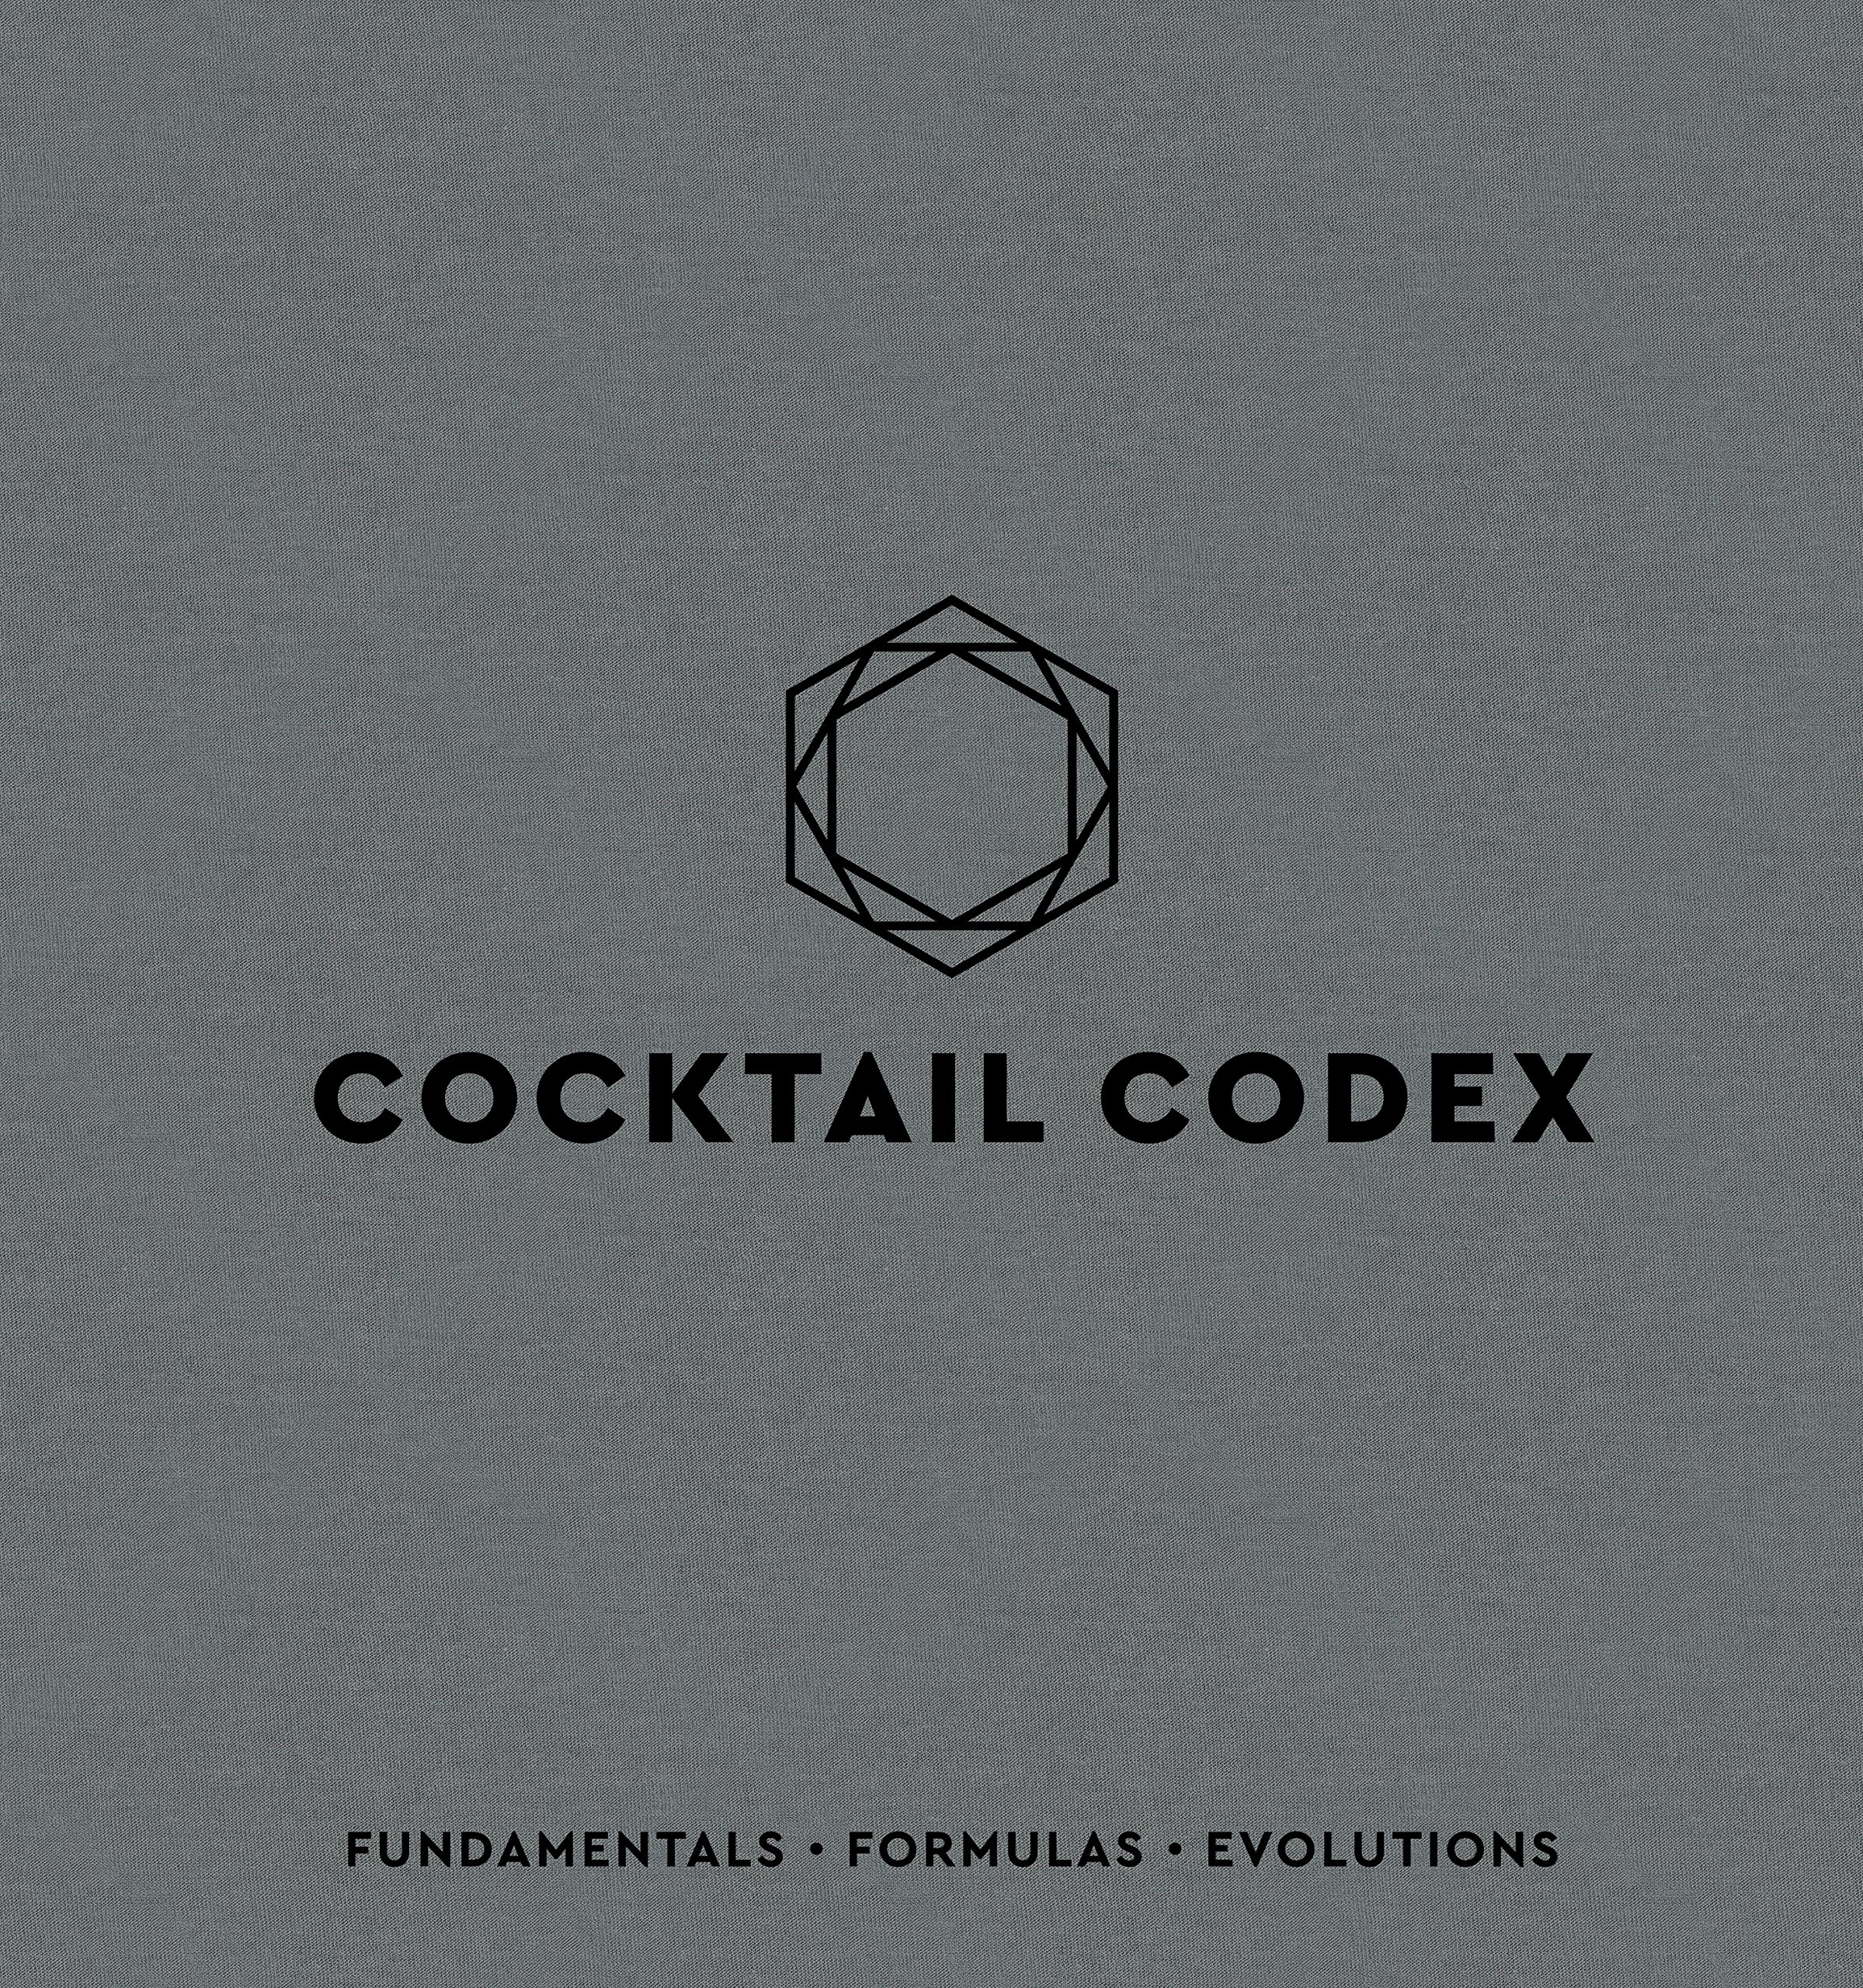 'Cocktail Codex' by Alex Day